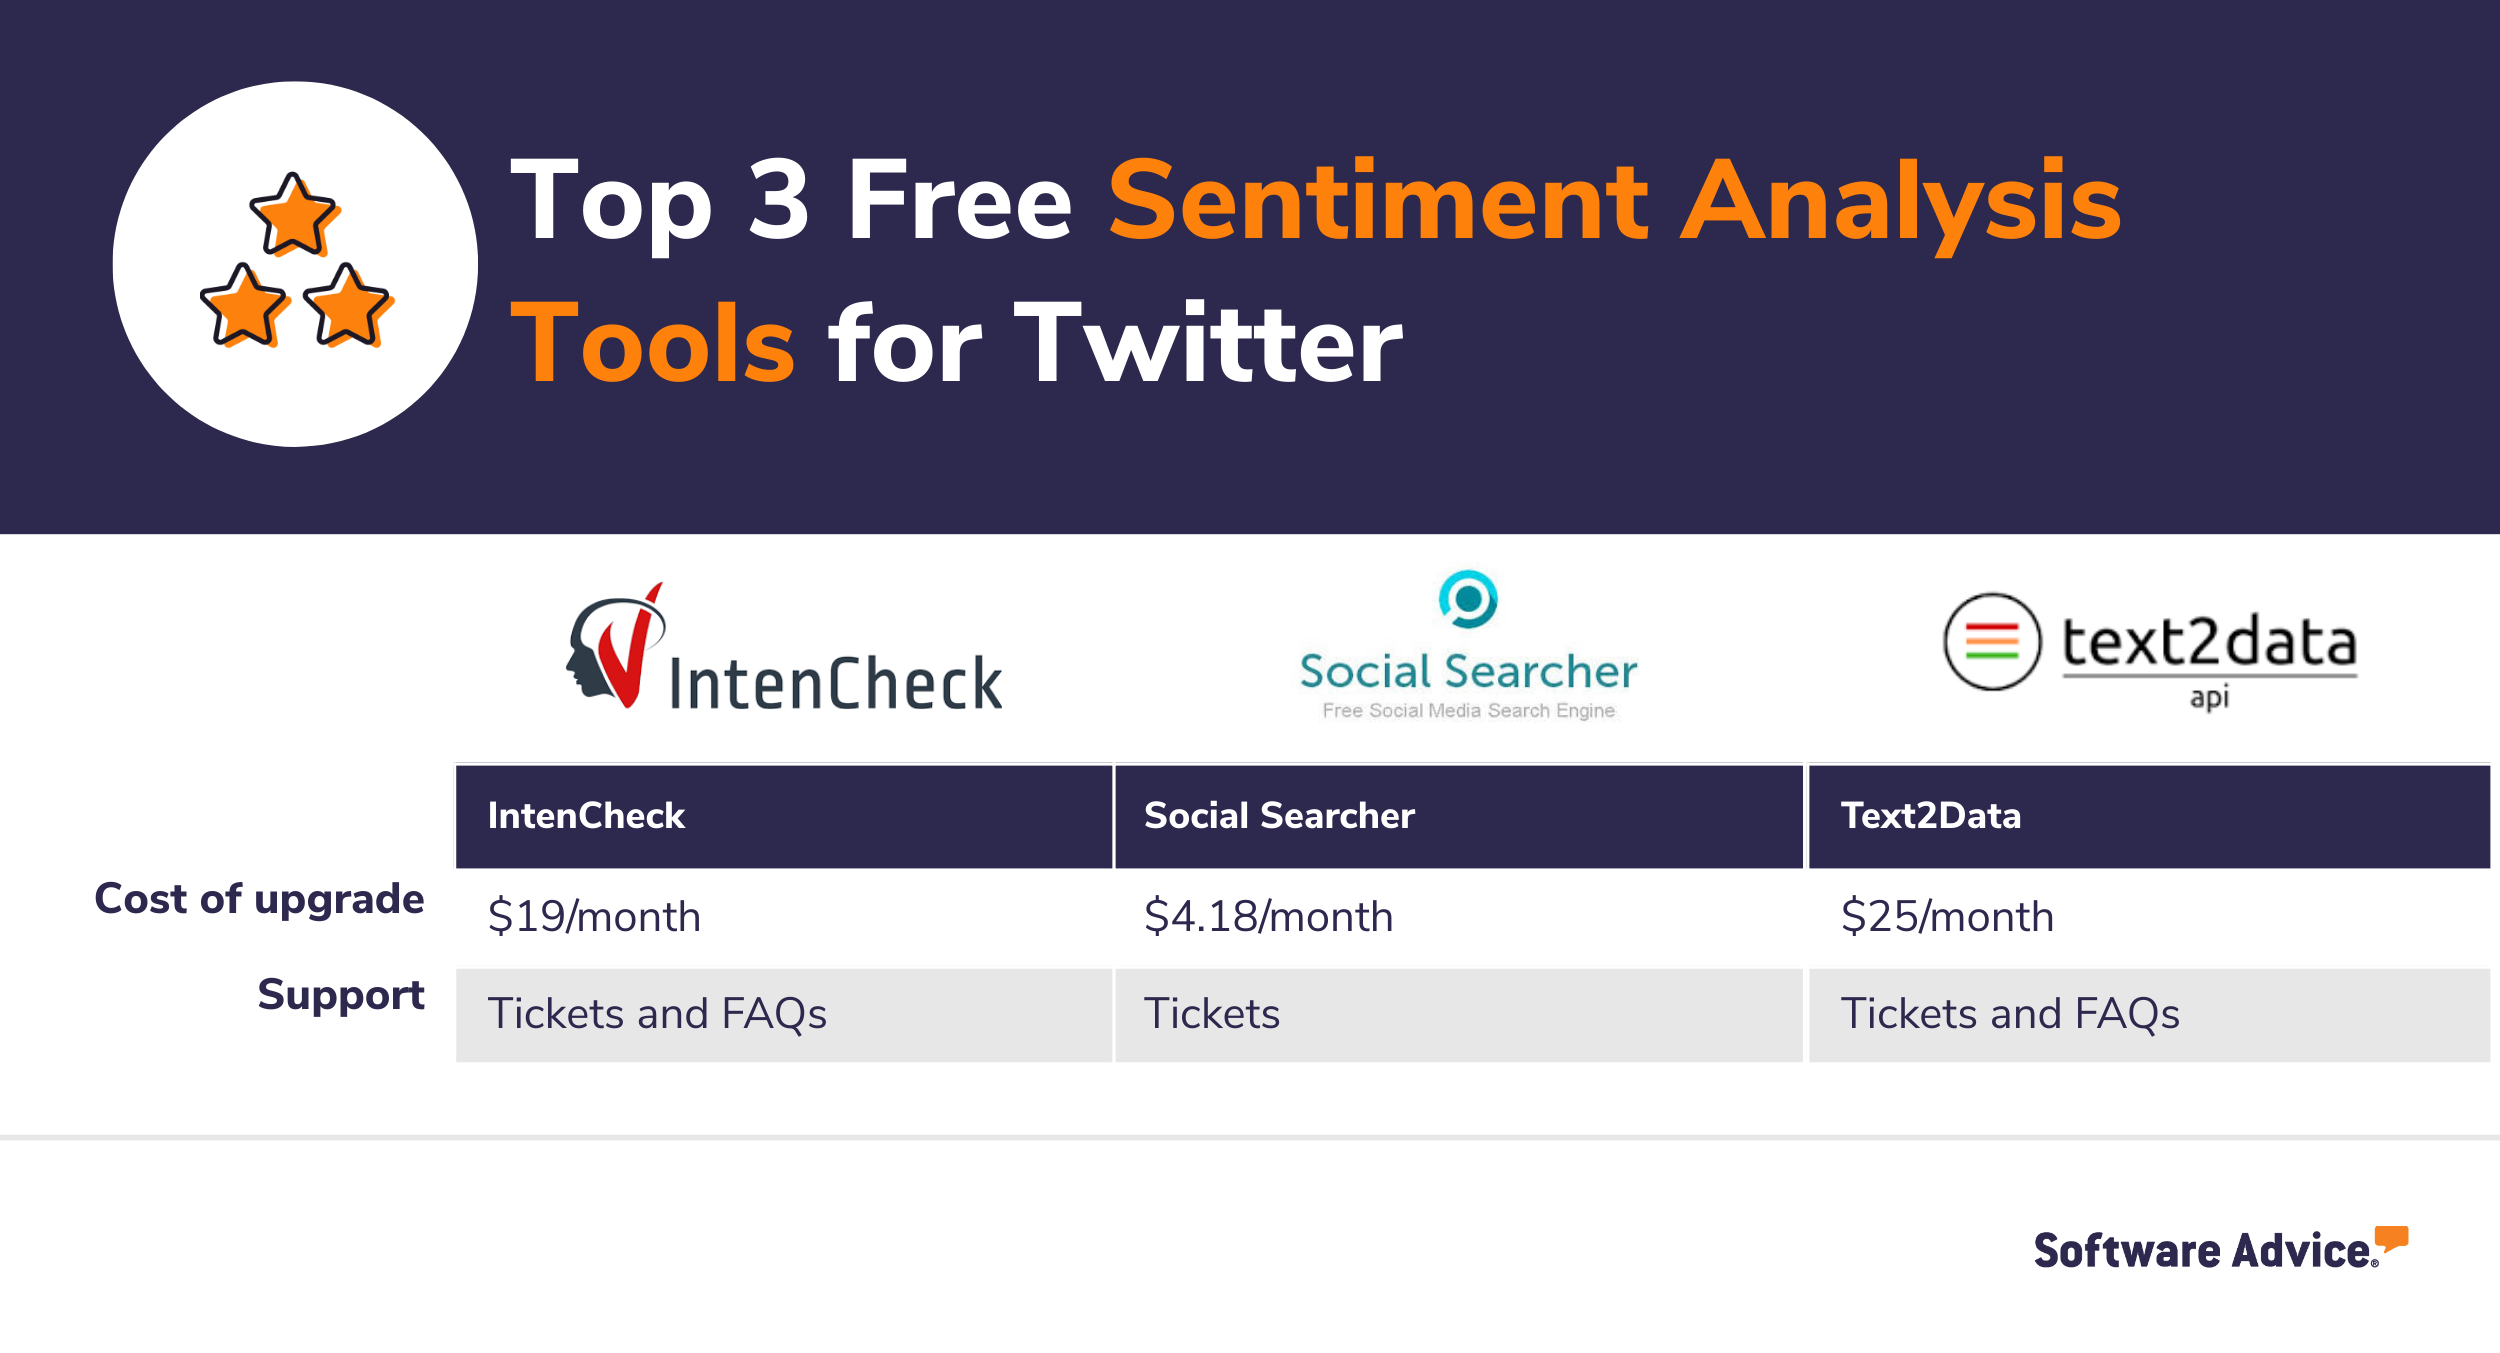 Top three sentiment analysis tools for Twitter.